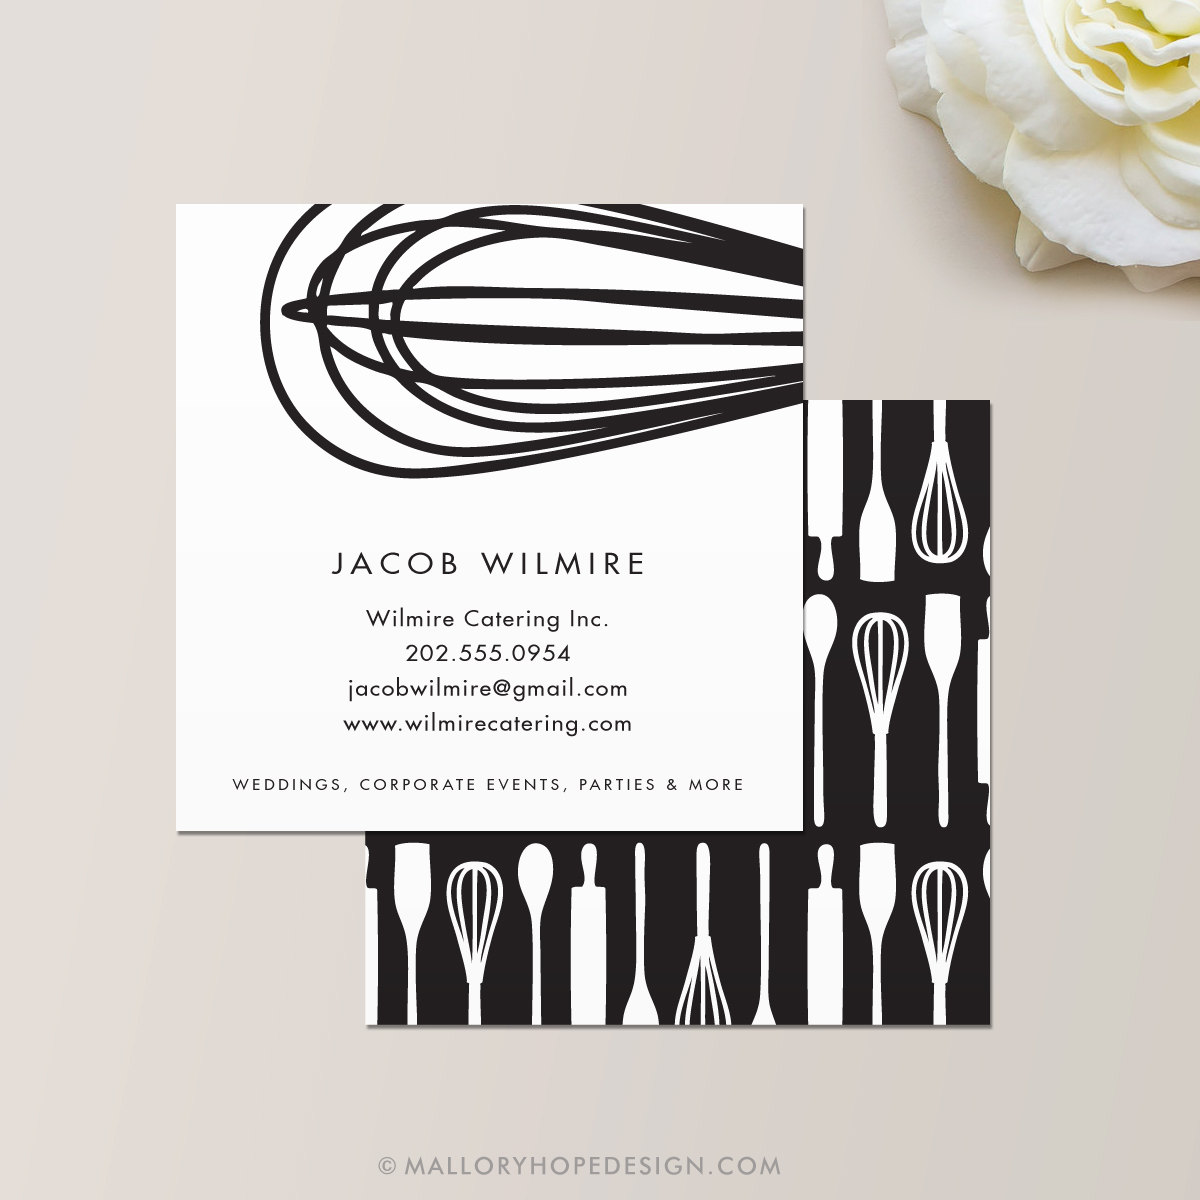 Baker or Catering Chef Square Business Card / Calling Card /